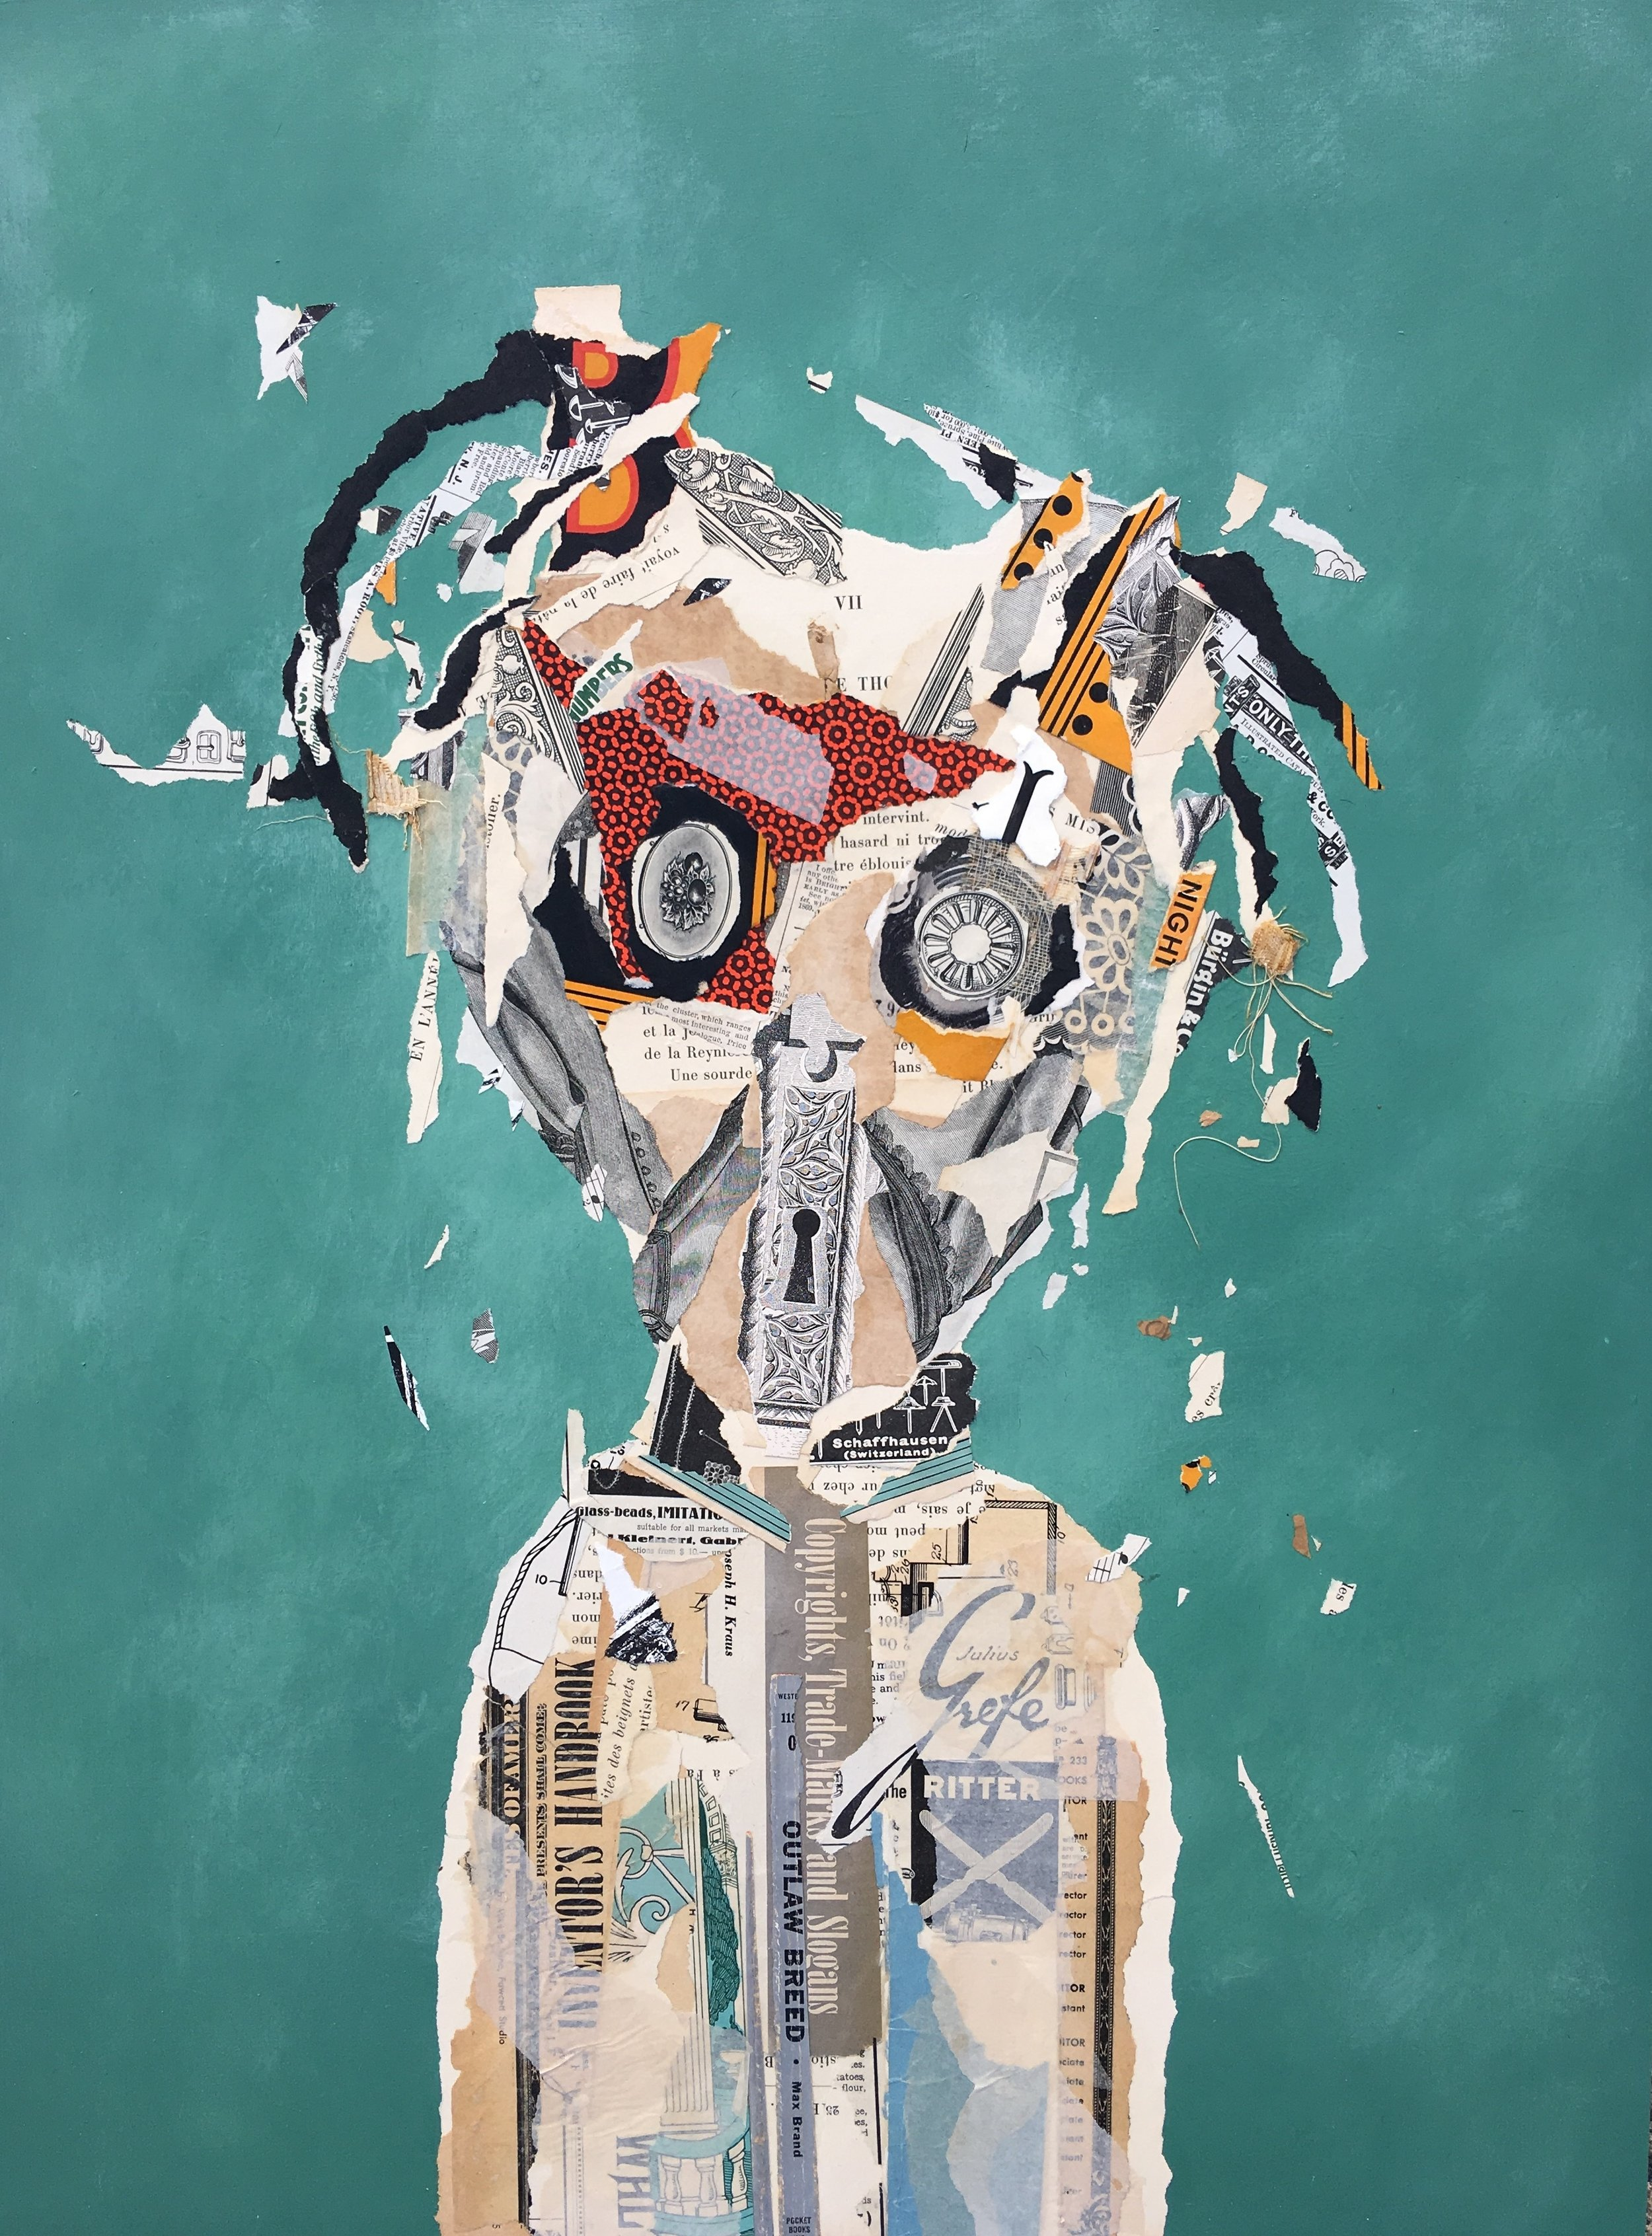 Julius - Mixed Media collage on panel 18x24inches